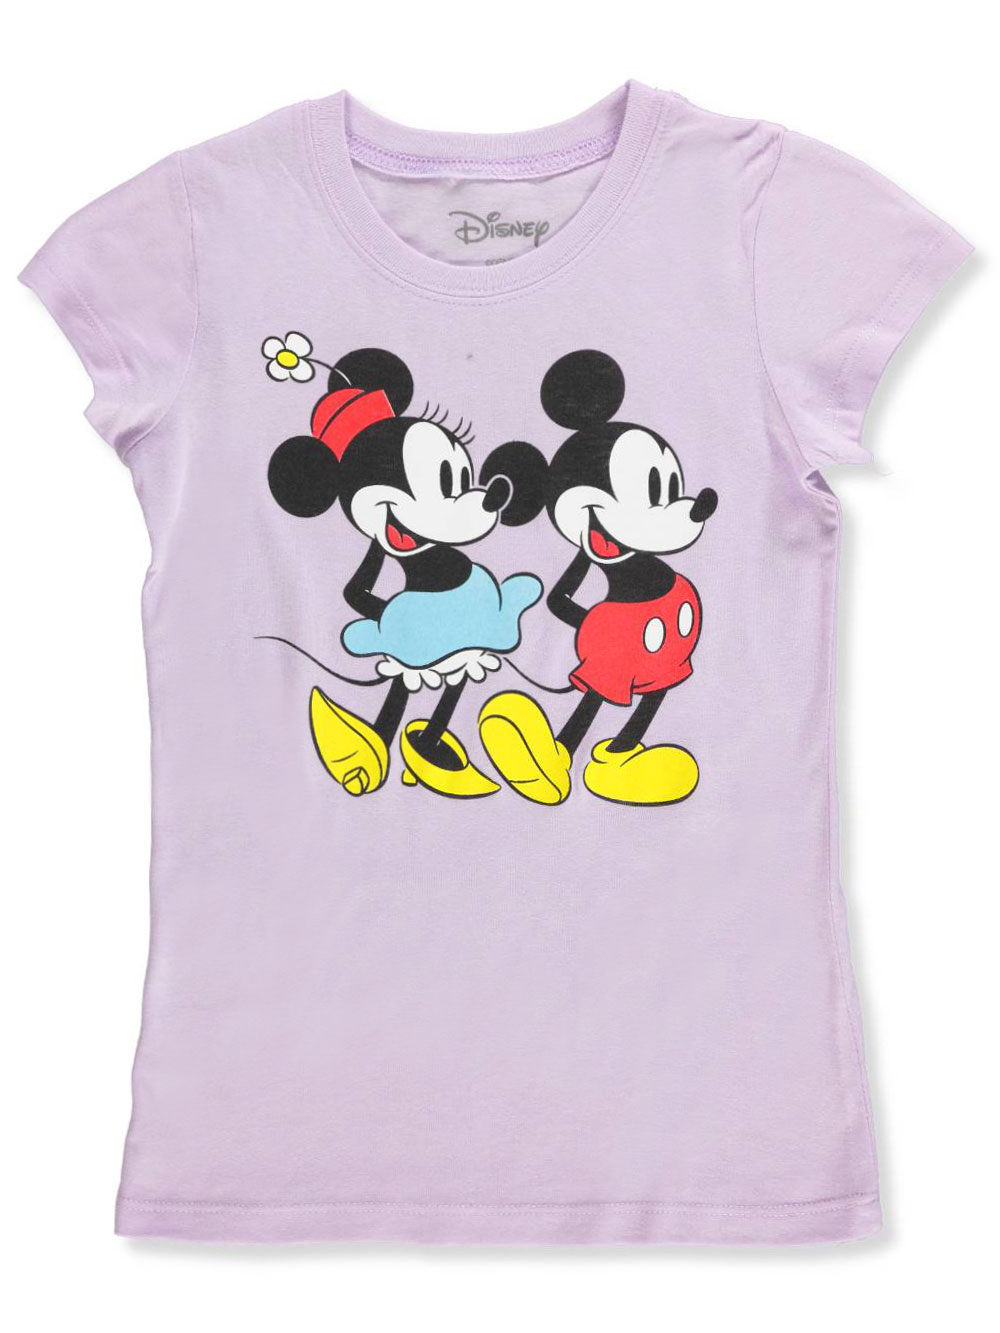 Disney Girls' T-shirt Featuring Mickey and Minnie Mouse